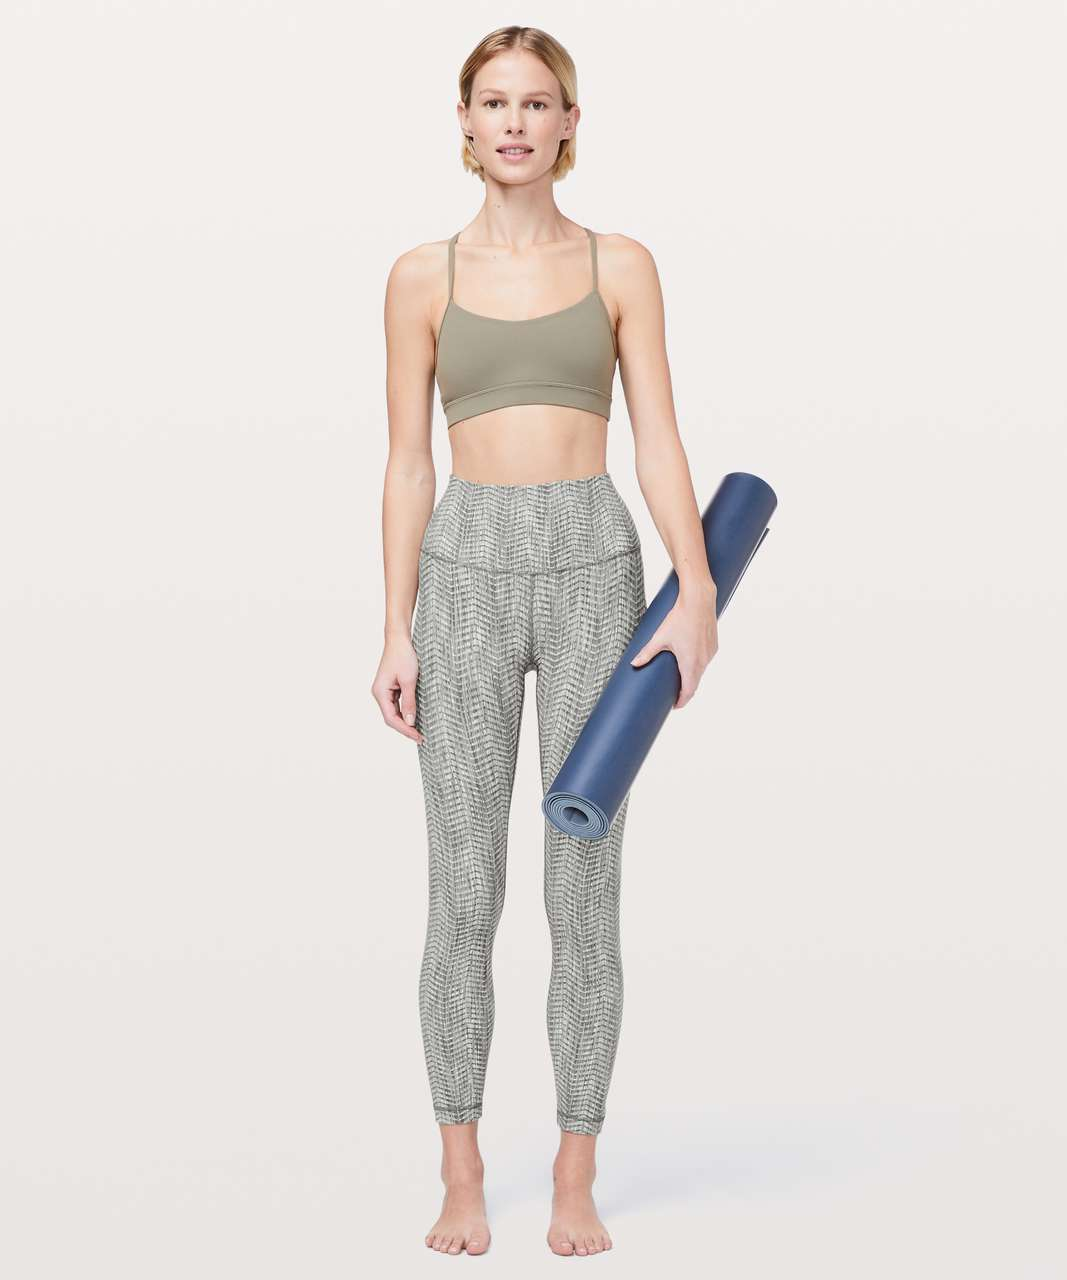 "Lululemon Wunder Under High-Rise 7/8 Tight *Full-On Luxtreme 25"" - Arrow Jacquard Dark Olive Grey Sage"